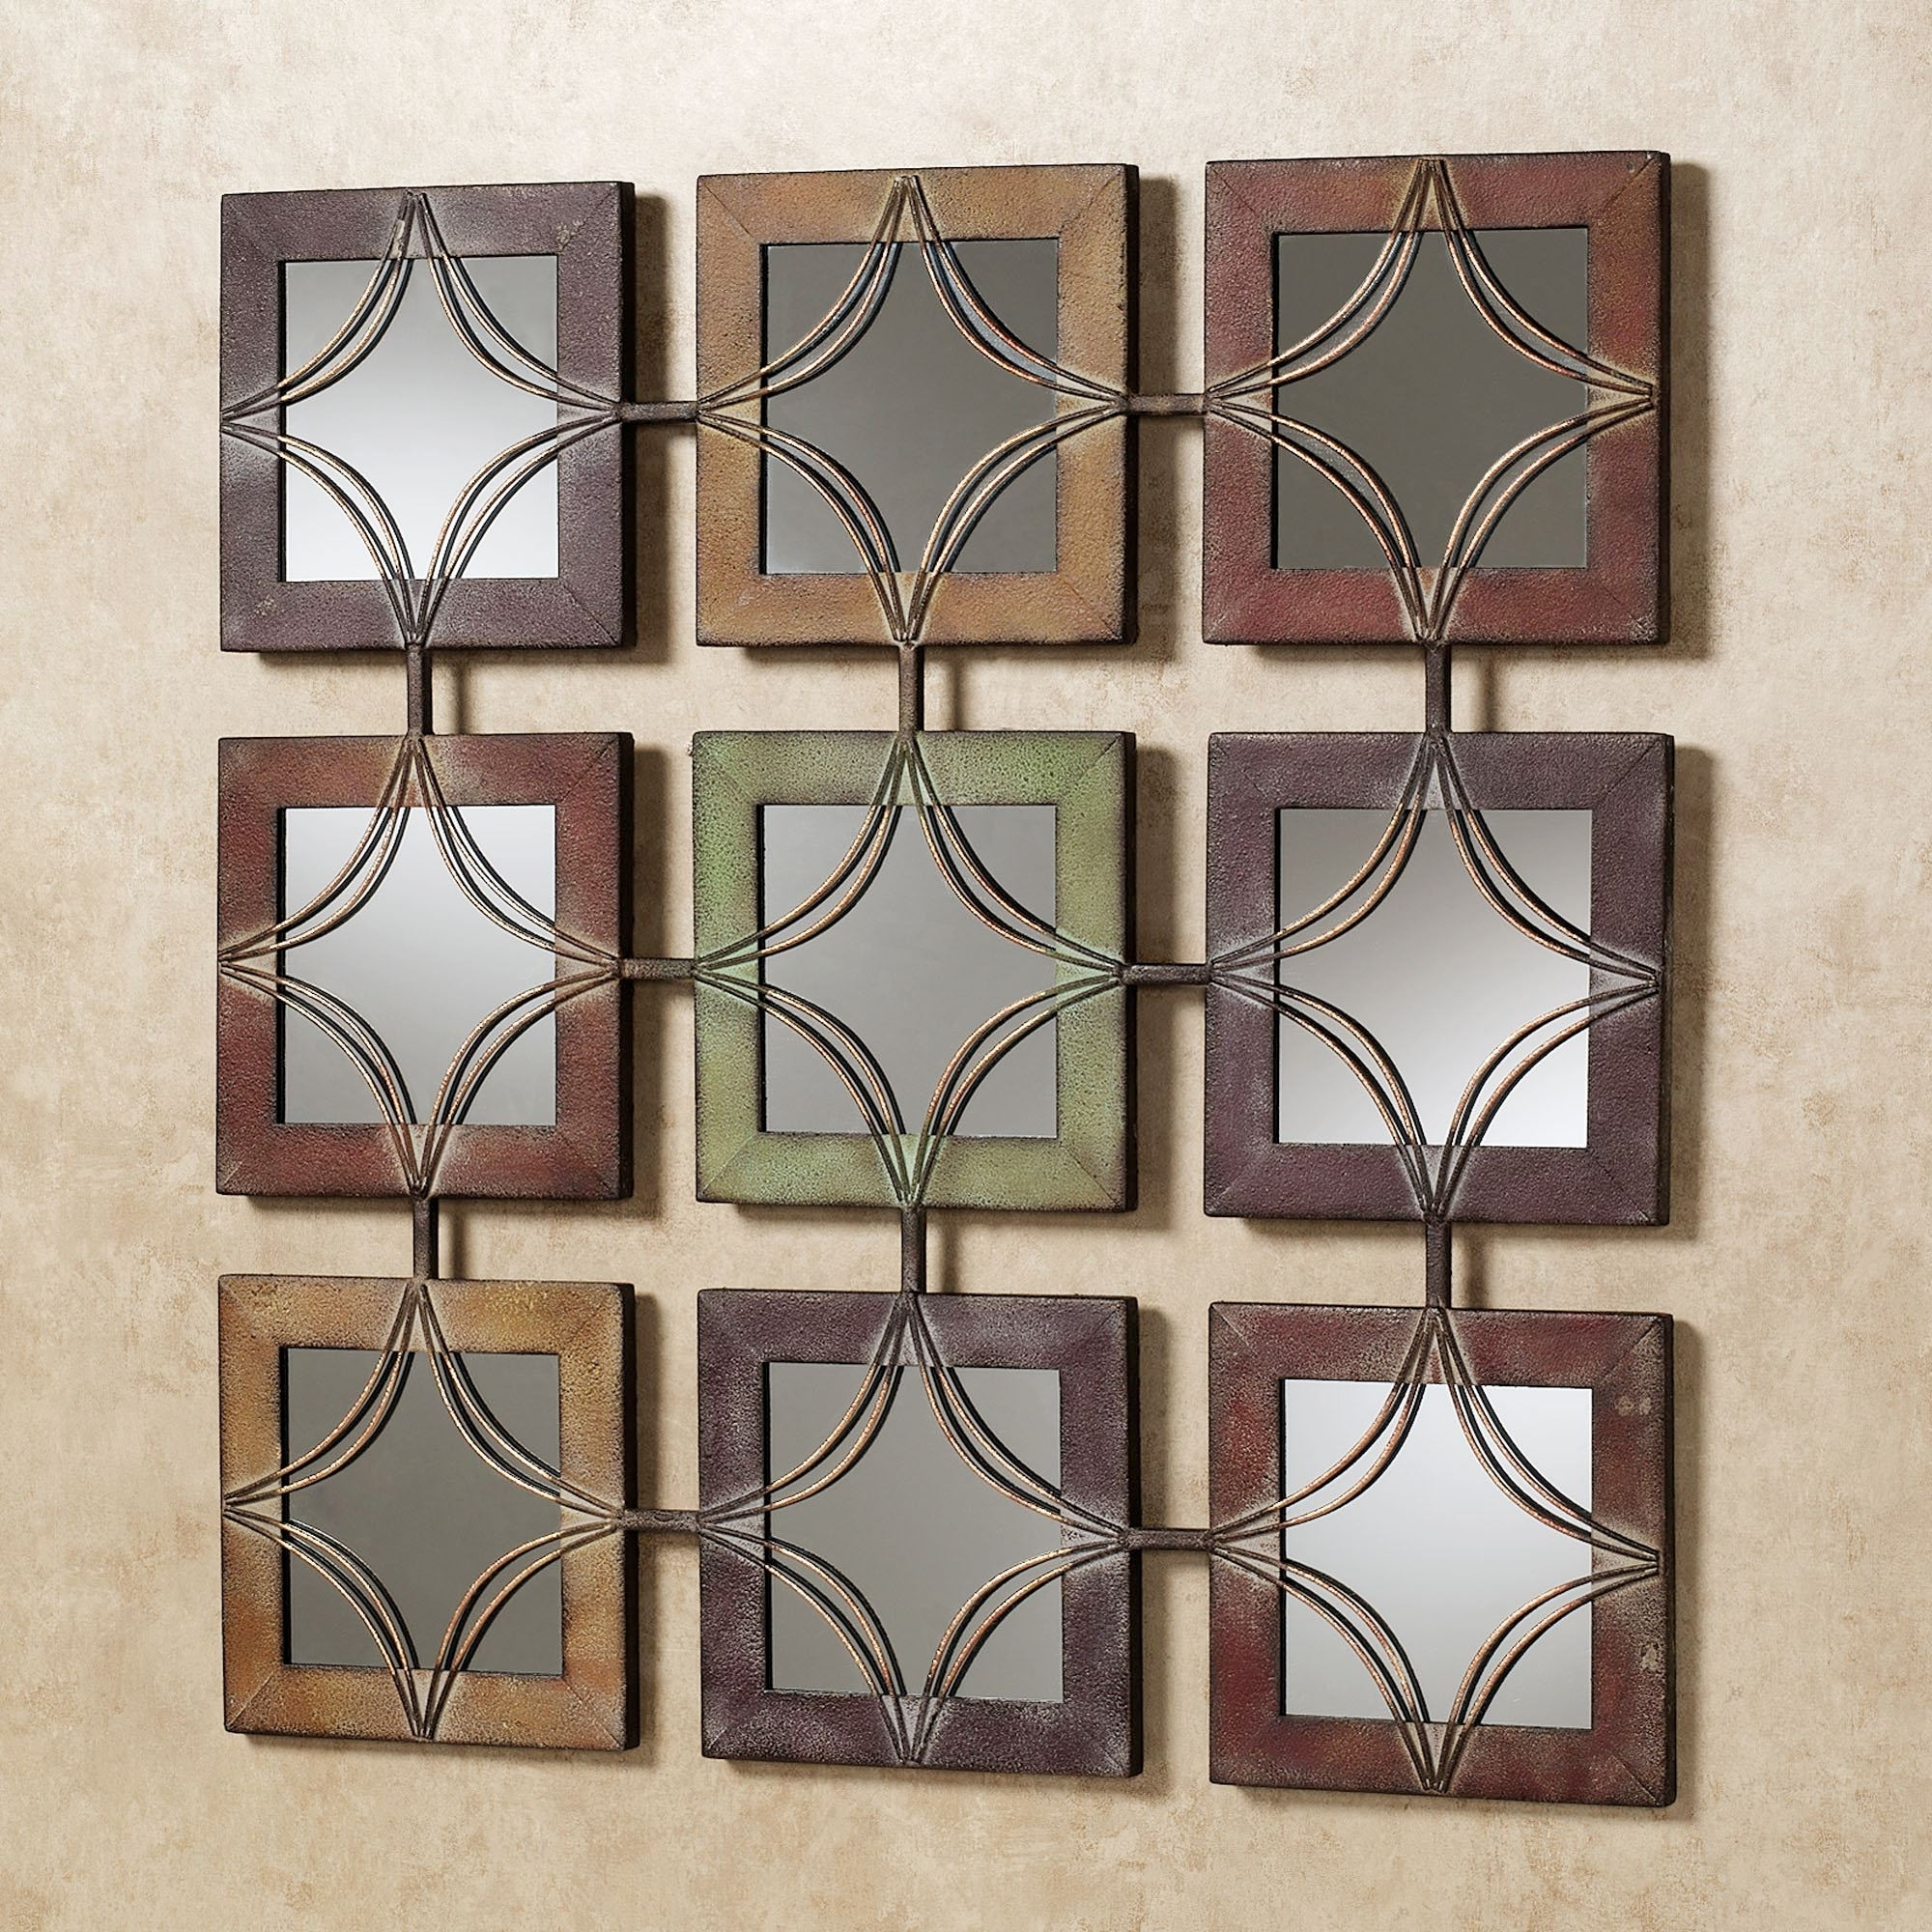 Domini Mirrored Metal Wall Art With Fashionable Mirrored Wall Art (View 3 of 20)